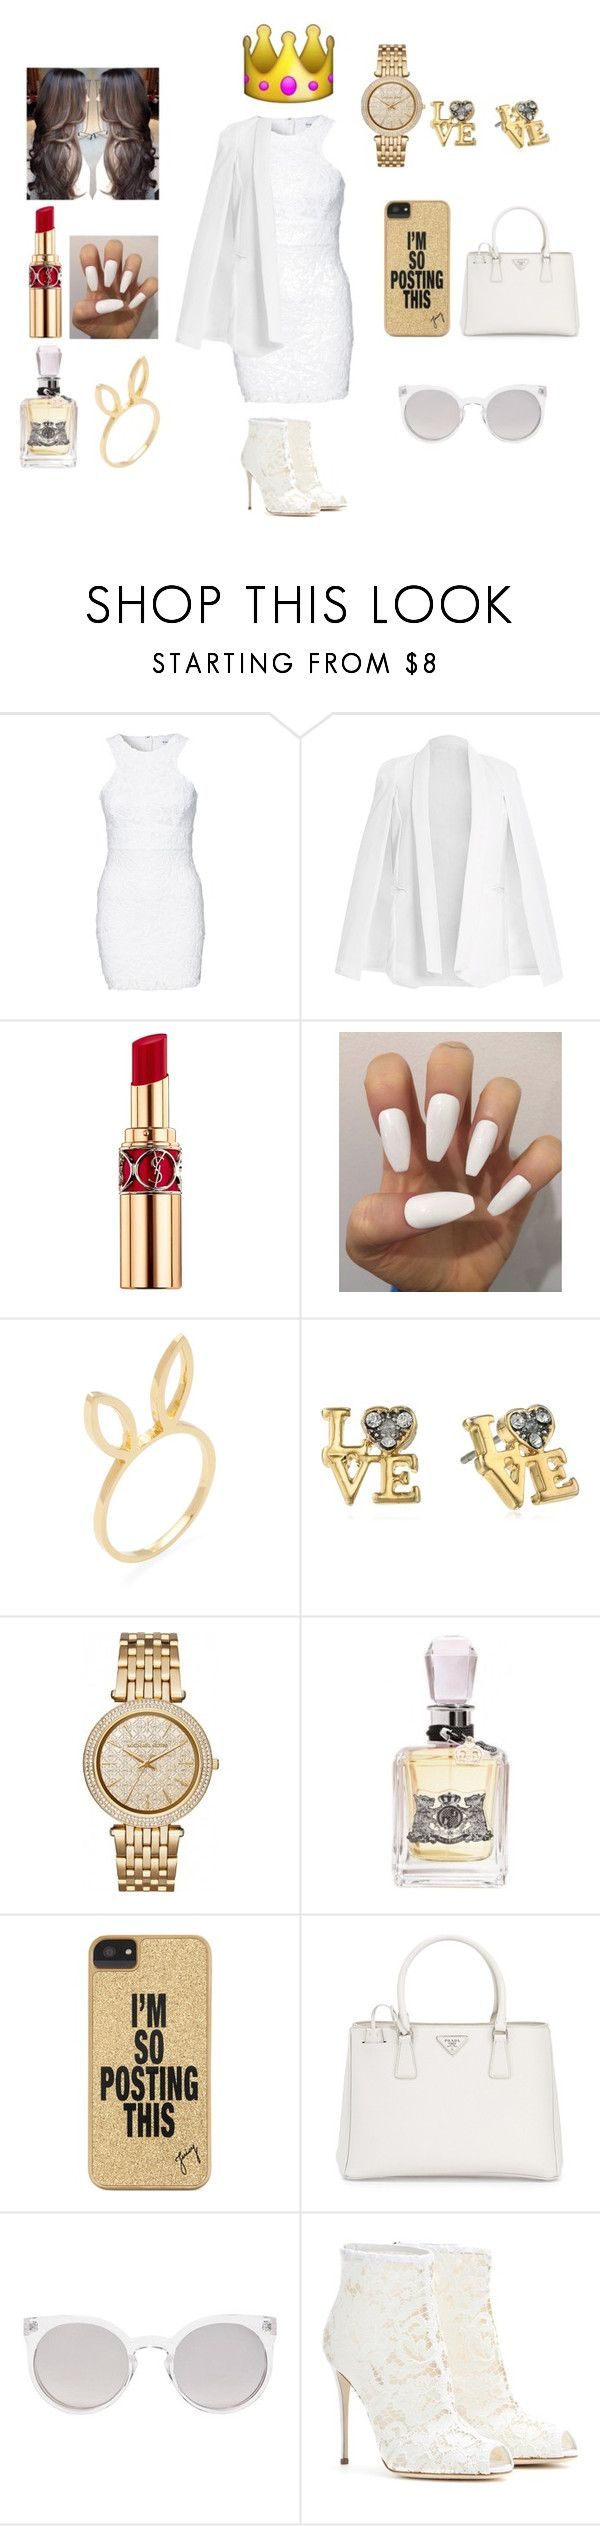 """""""#Rich kids of Beverly Hills"""" by fashionismypashion476589 ❤ liked on Polyvore featuring Glamorous, Yves Saint Laurent, Jacquie Aiche, Juicy Couture, Michael Kors, Prada, Kosha and Dolce&Gabbana"""